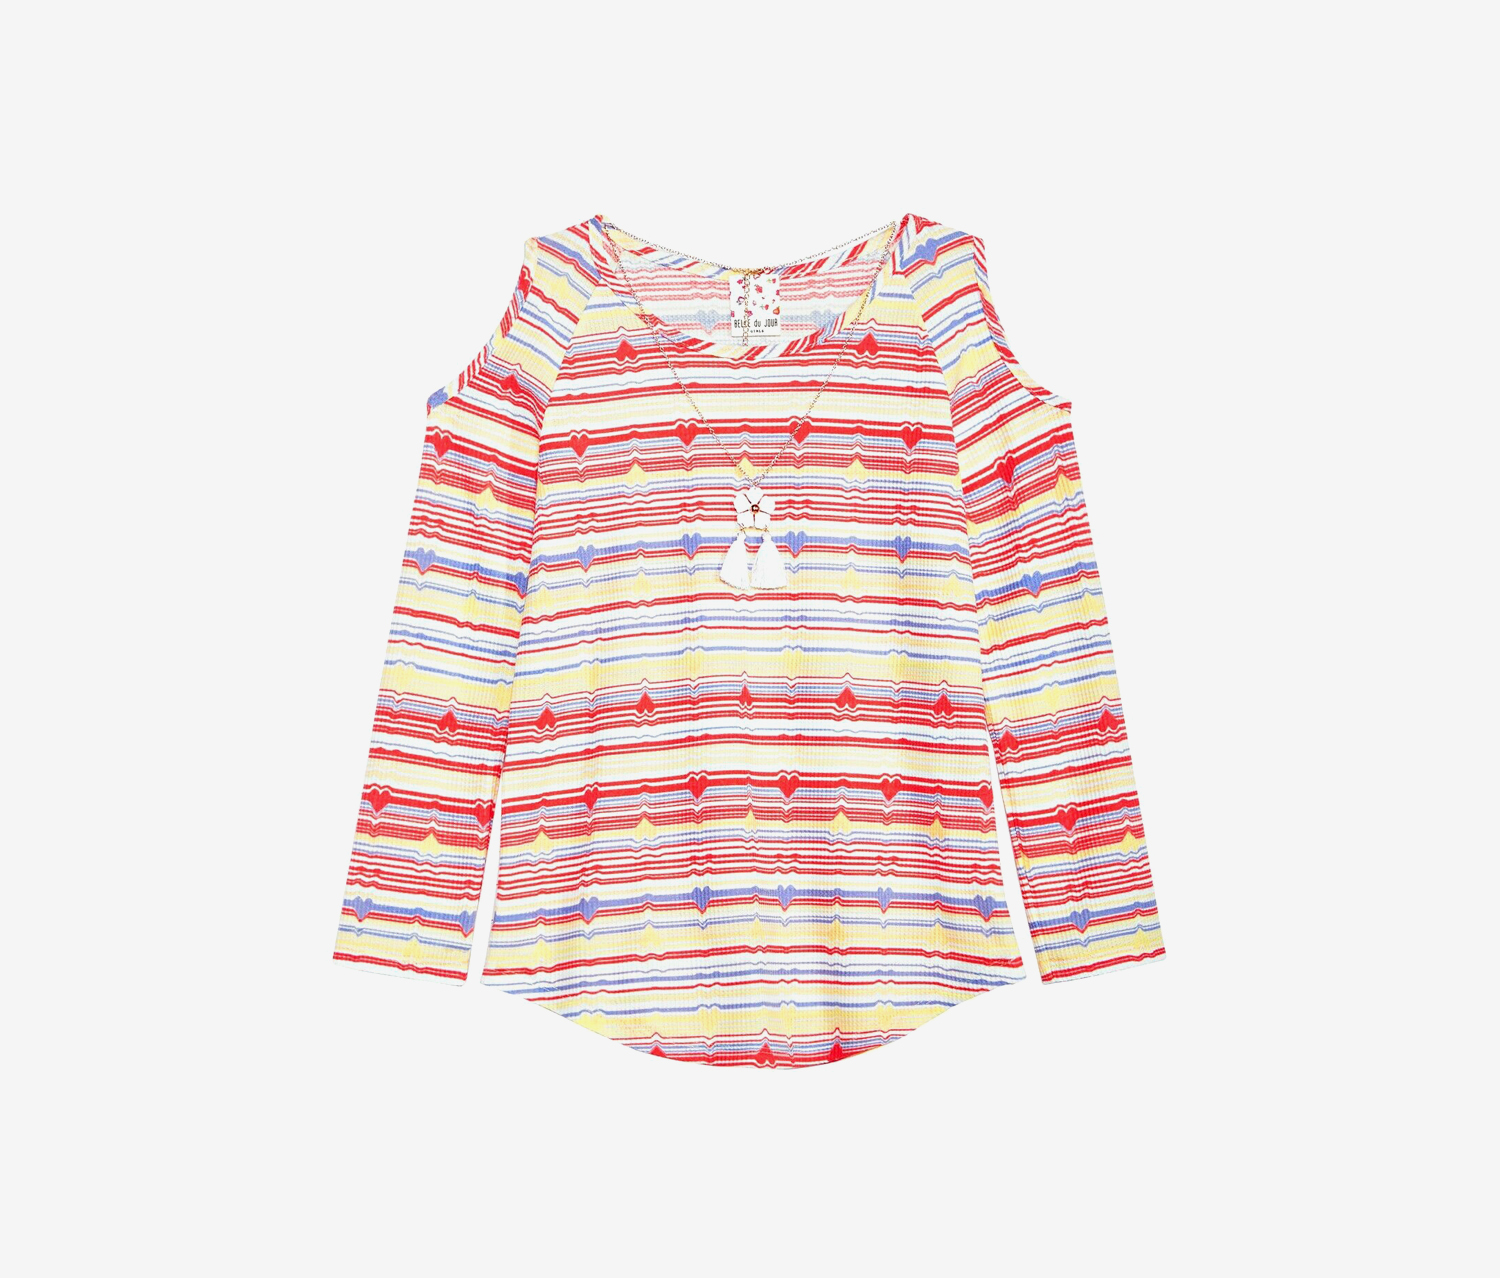 Big Girls Striped Top & Necklace, Yellow/Red Combo